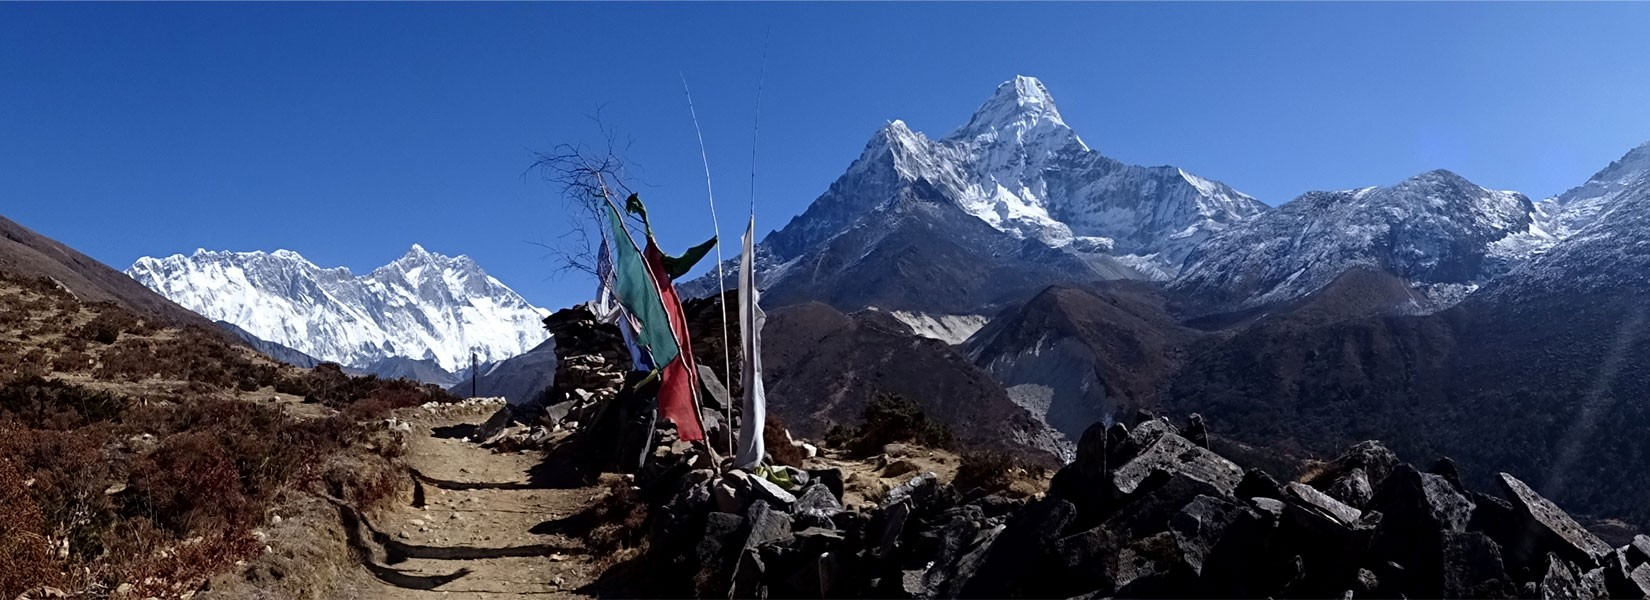 View Mt. Everest, Amadablam from Pangboche in Everest Base Camp